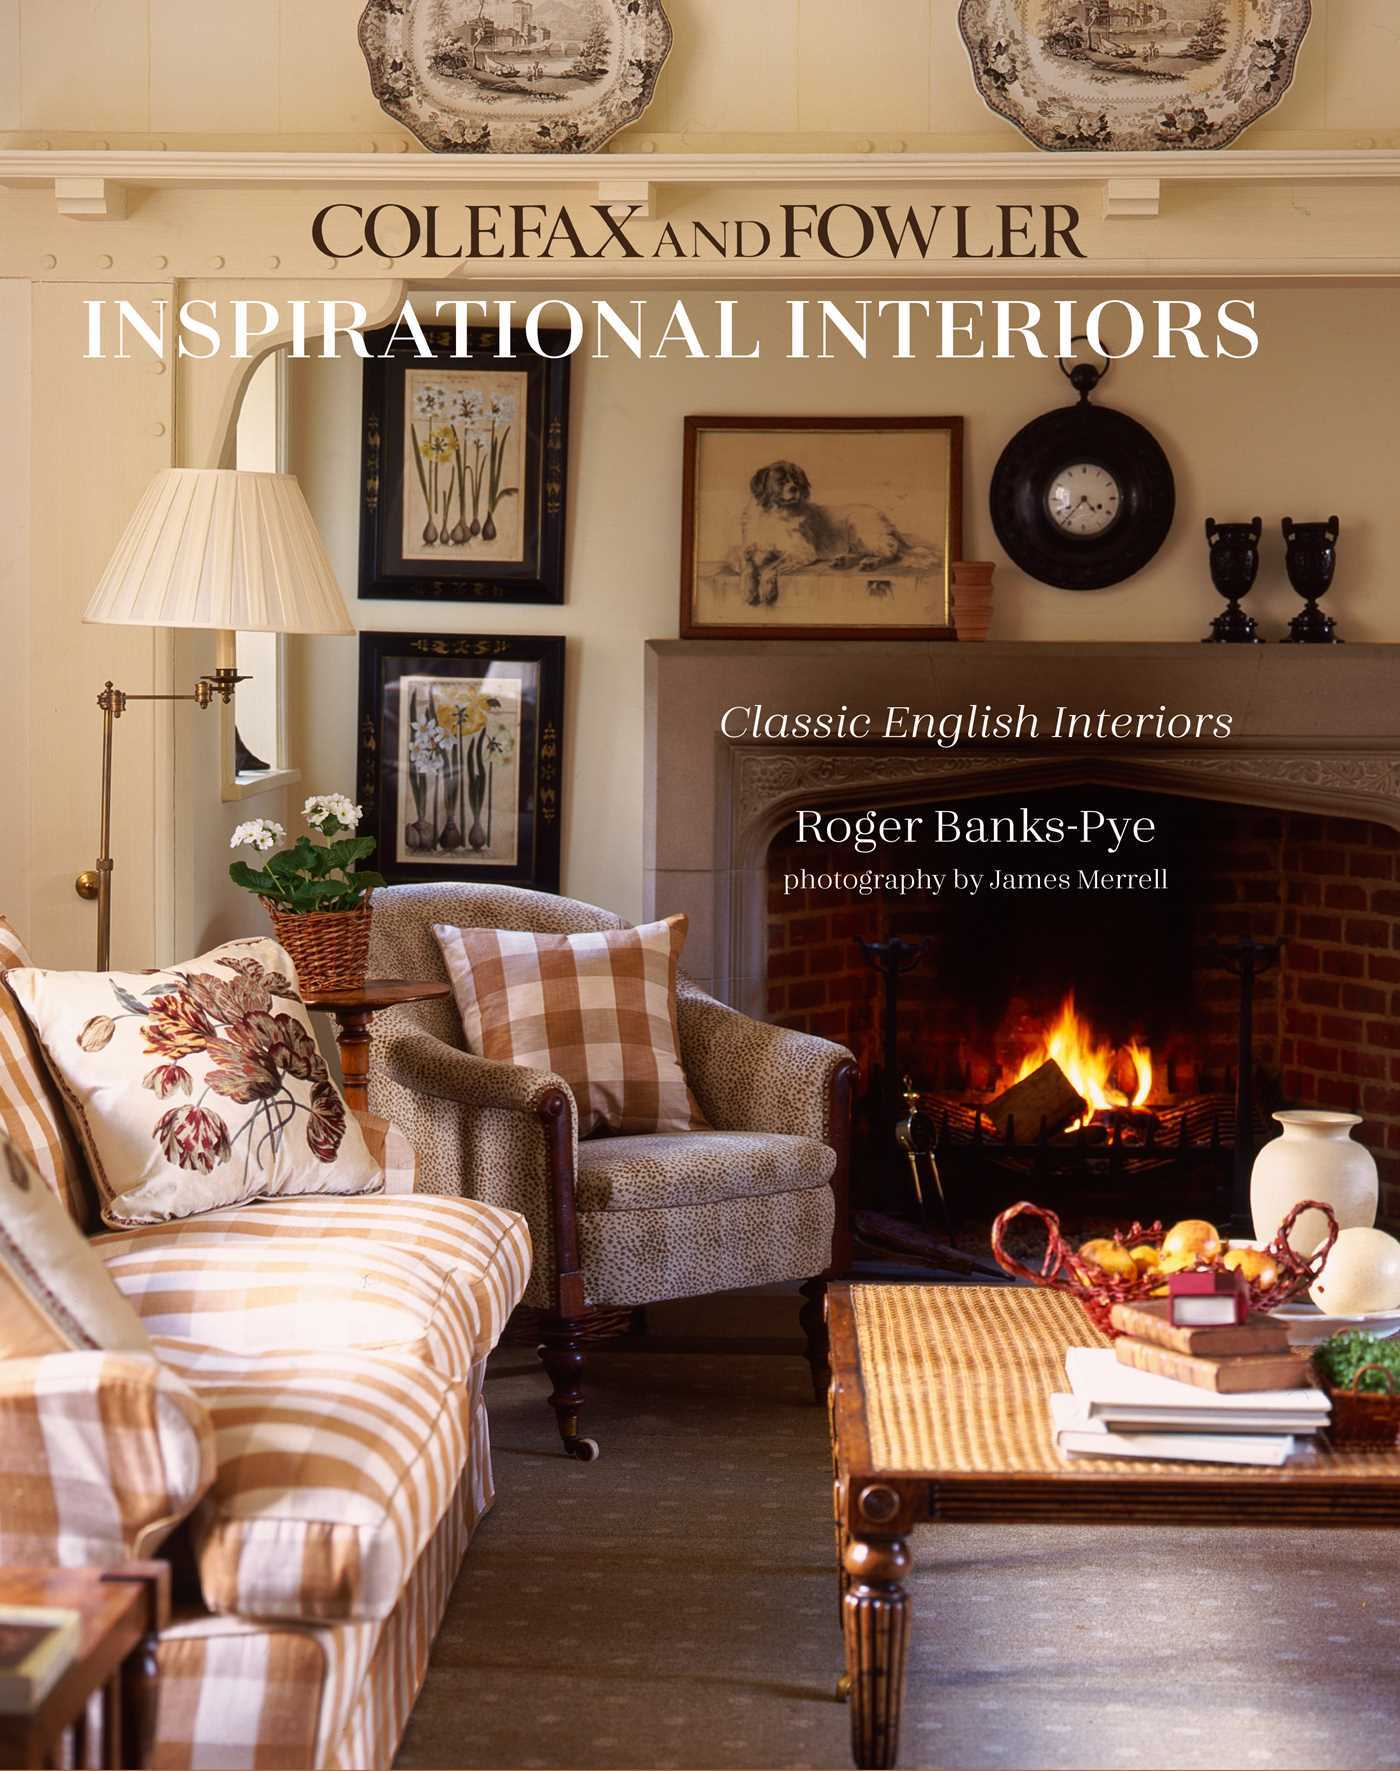 Inspirational Interiors: Classic English Interiors from Colefax and Fowler